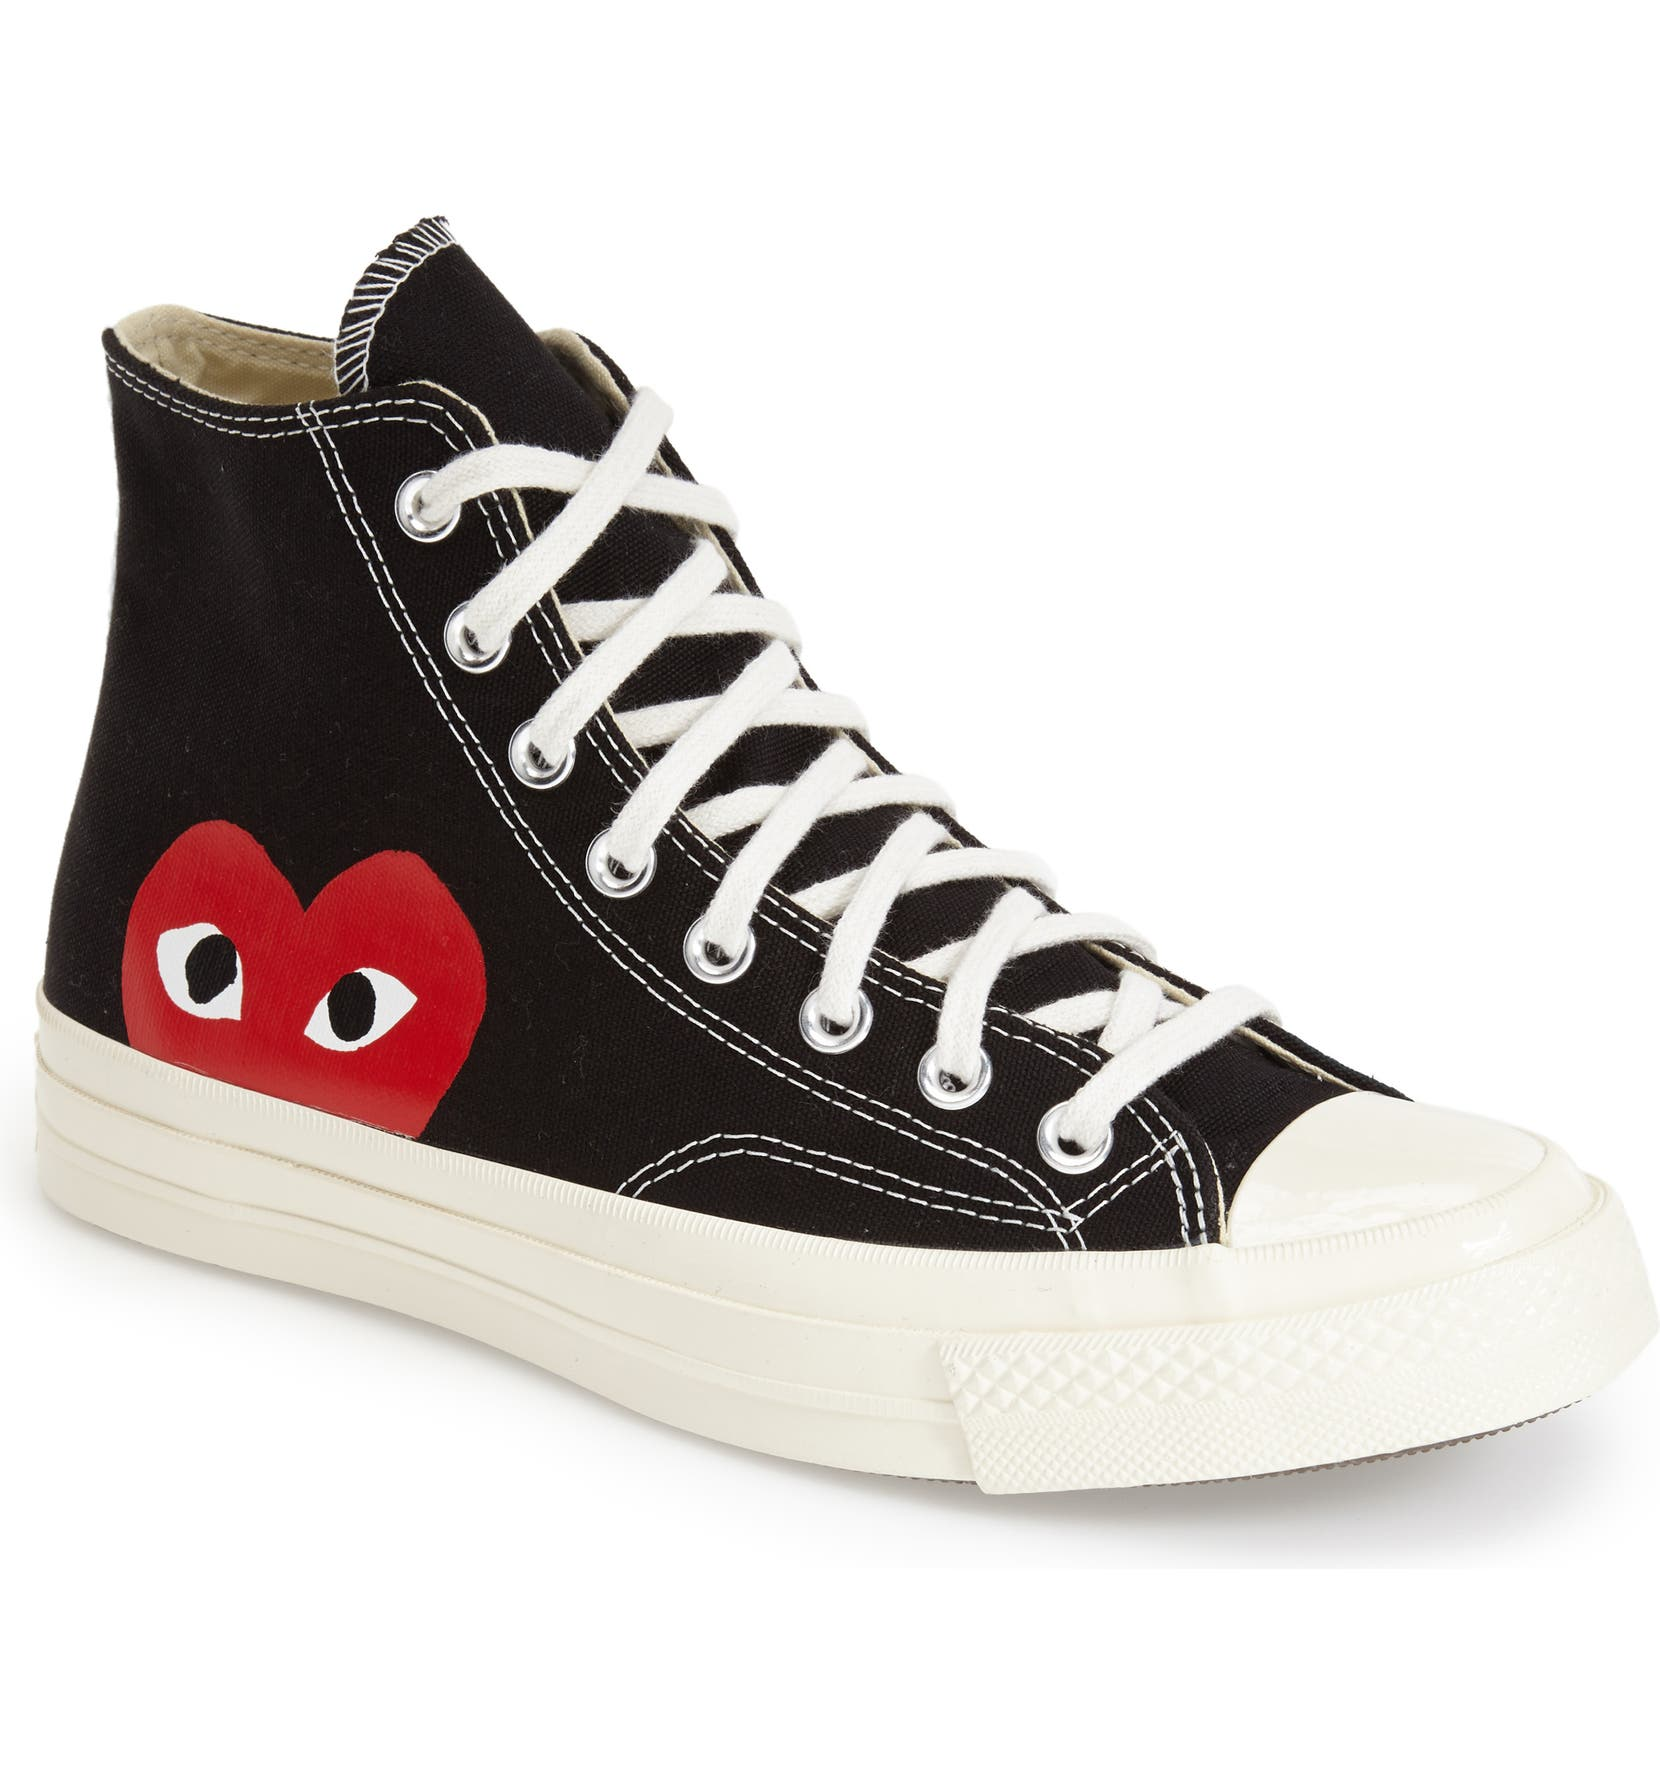 Comme des Garçons PLAY x Converse Chuck Taylor® Hidden Heart High Top  Sneaker (Men)  7b8b0fd0d50af